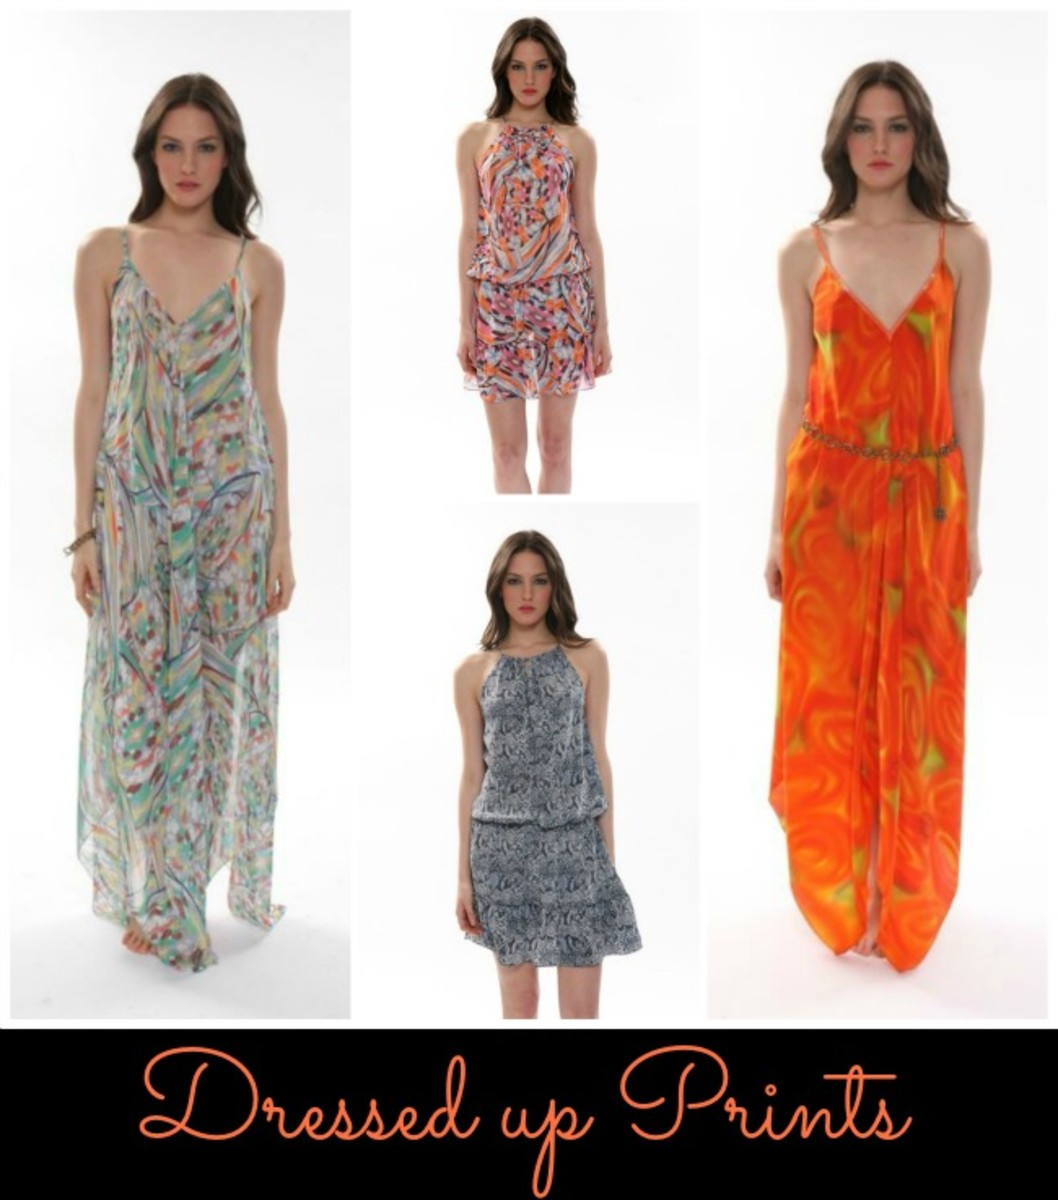 Hamptons style, hamptons fashion, prints, dressed up prints, dressed down prints, maxi dresses, stripes, jean jackets